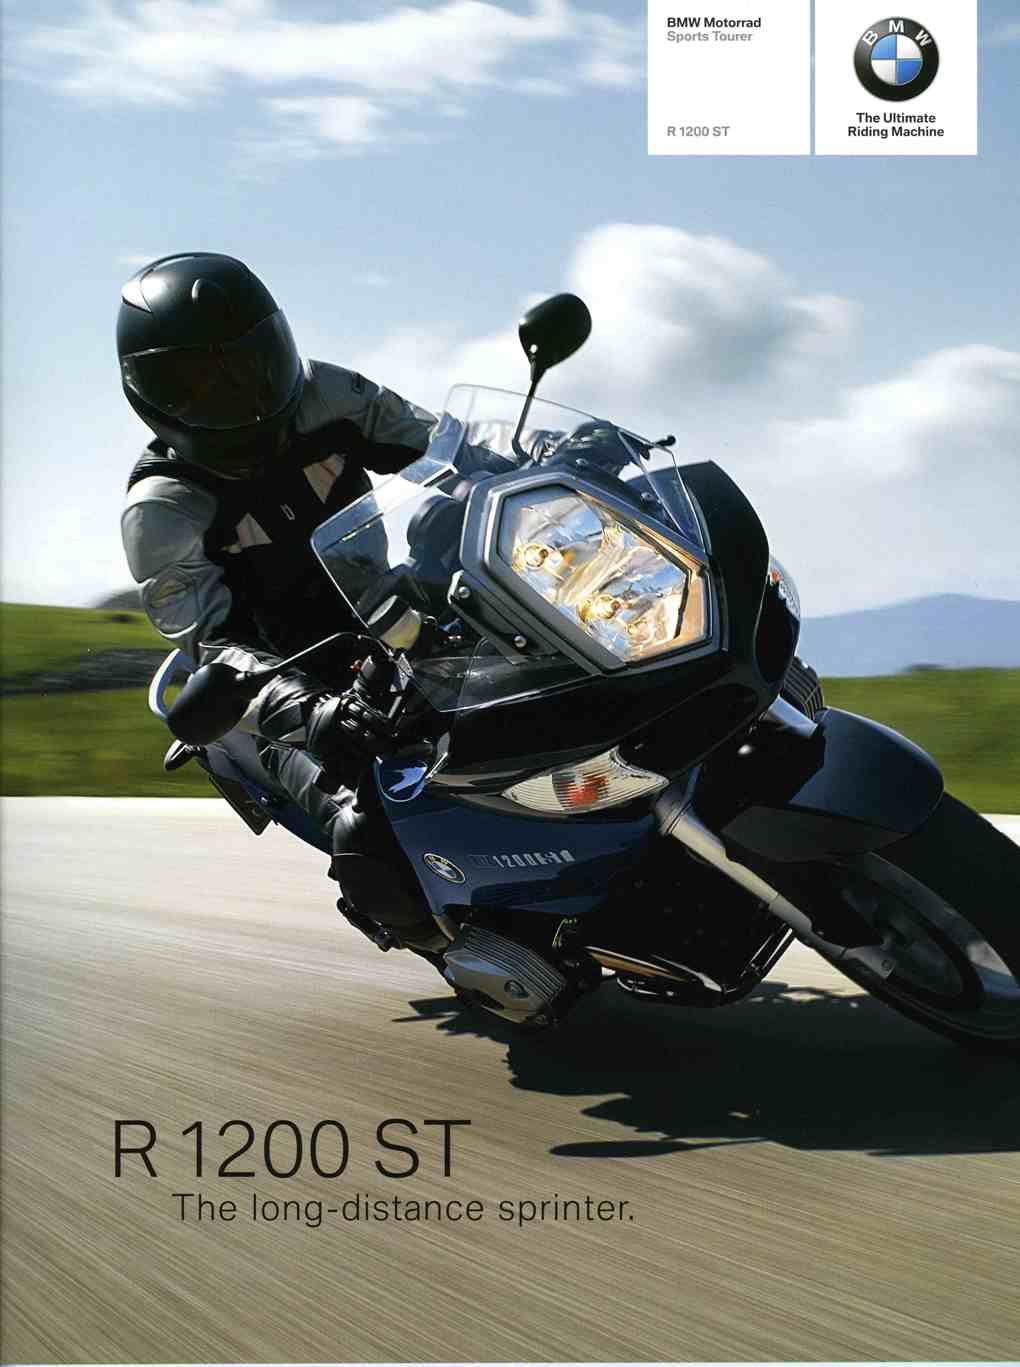 Brochure - BMW Motorrad Sports Tourer R 1200 ST – 2005 R1200ST Brochure